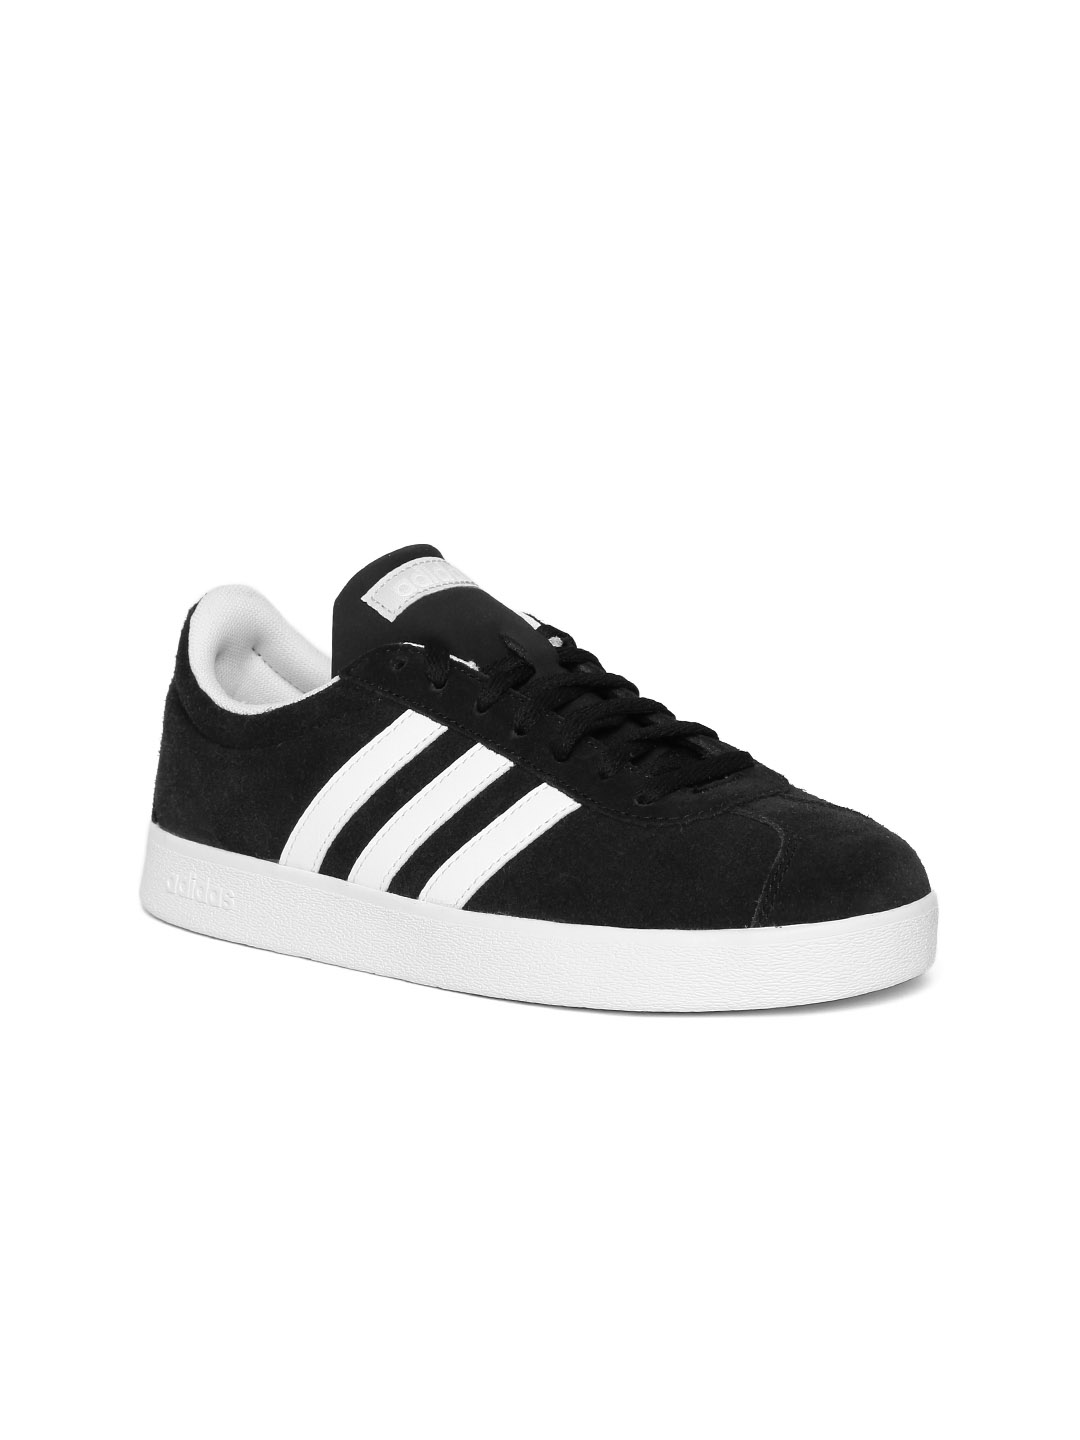 aa0adeeb4bc Buy ADIDAS Women Black VL COURT 2.0 Sneakers - Casual Shoes for ...